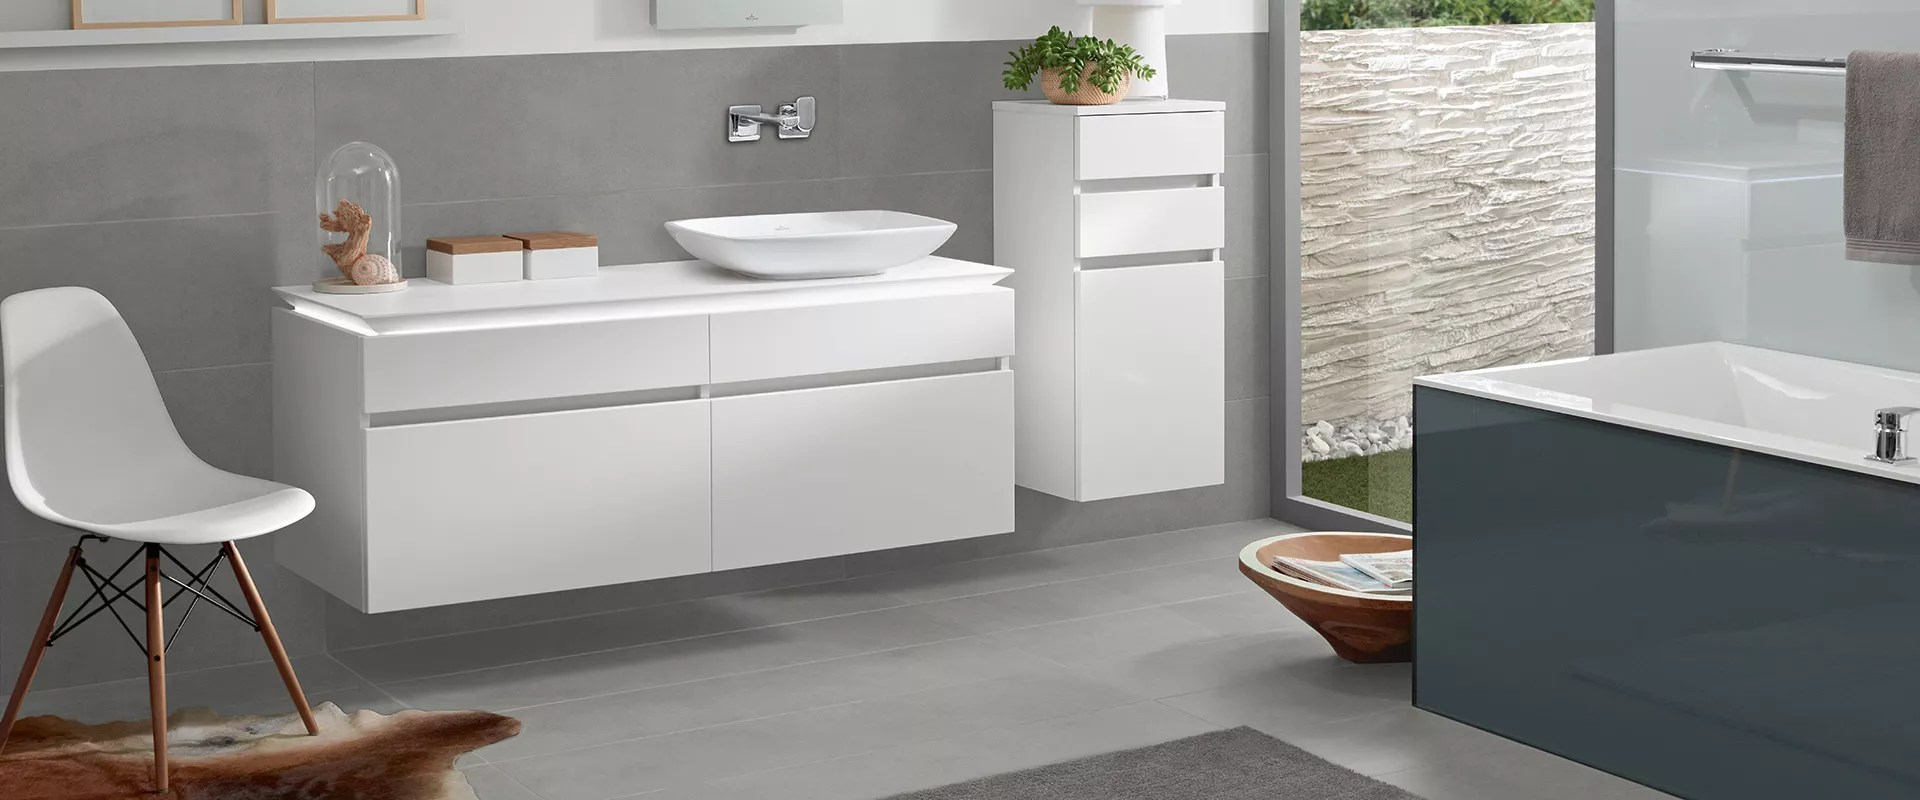 Glas Waschbecken Villeroy & Boch Loop Friends Collection By Villeroy Boch Discover The